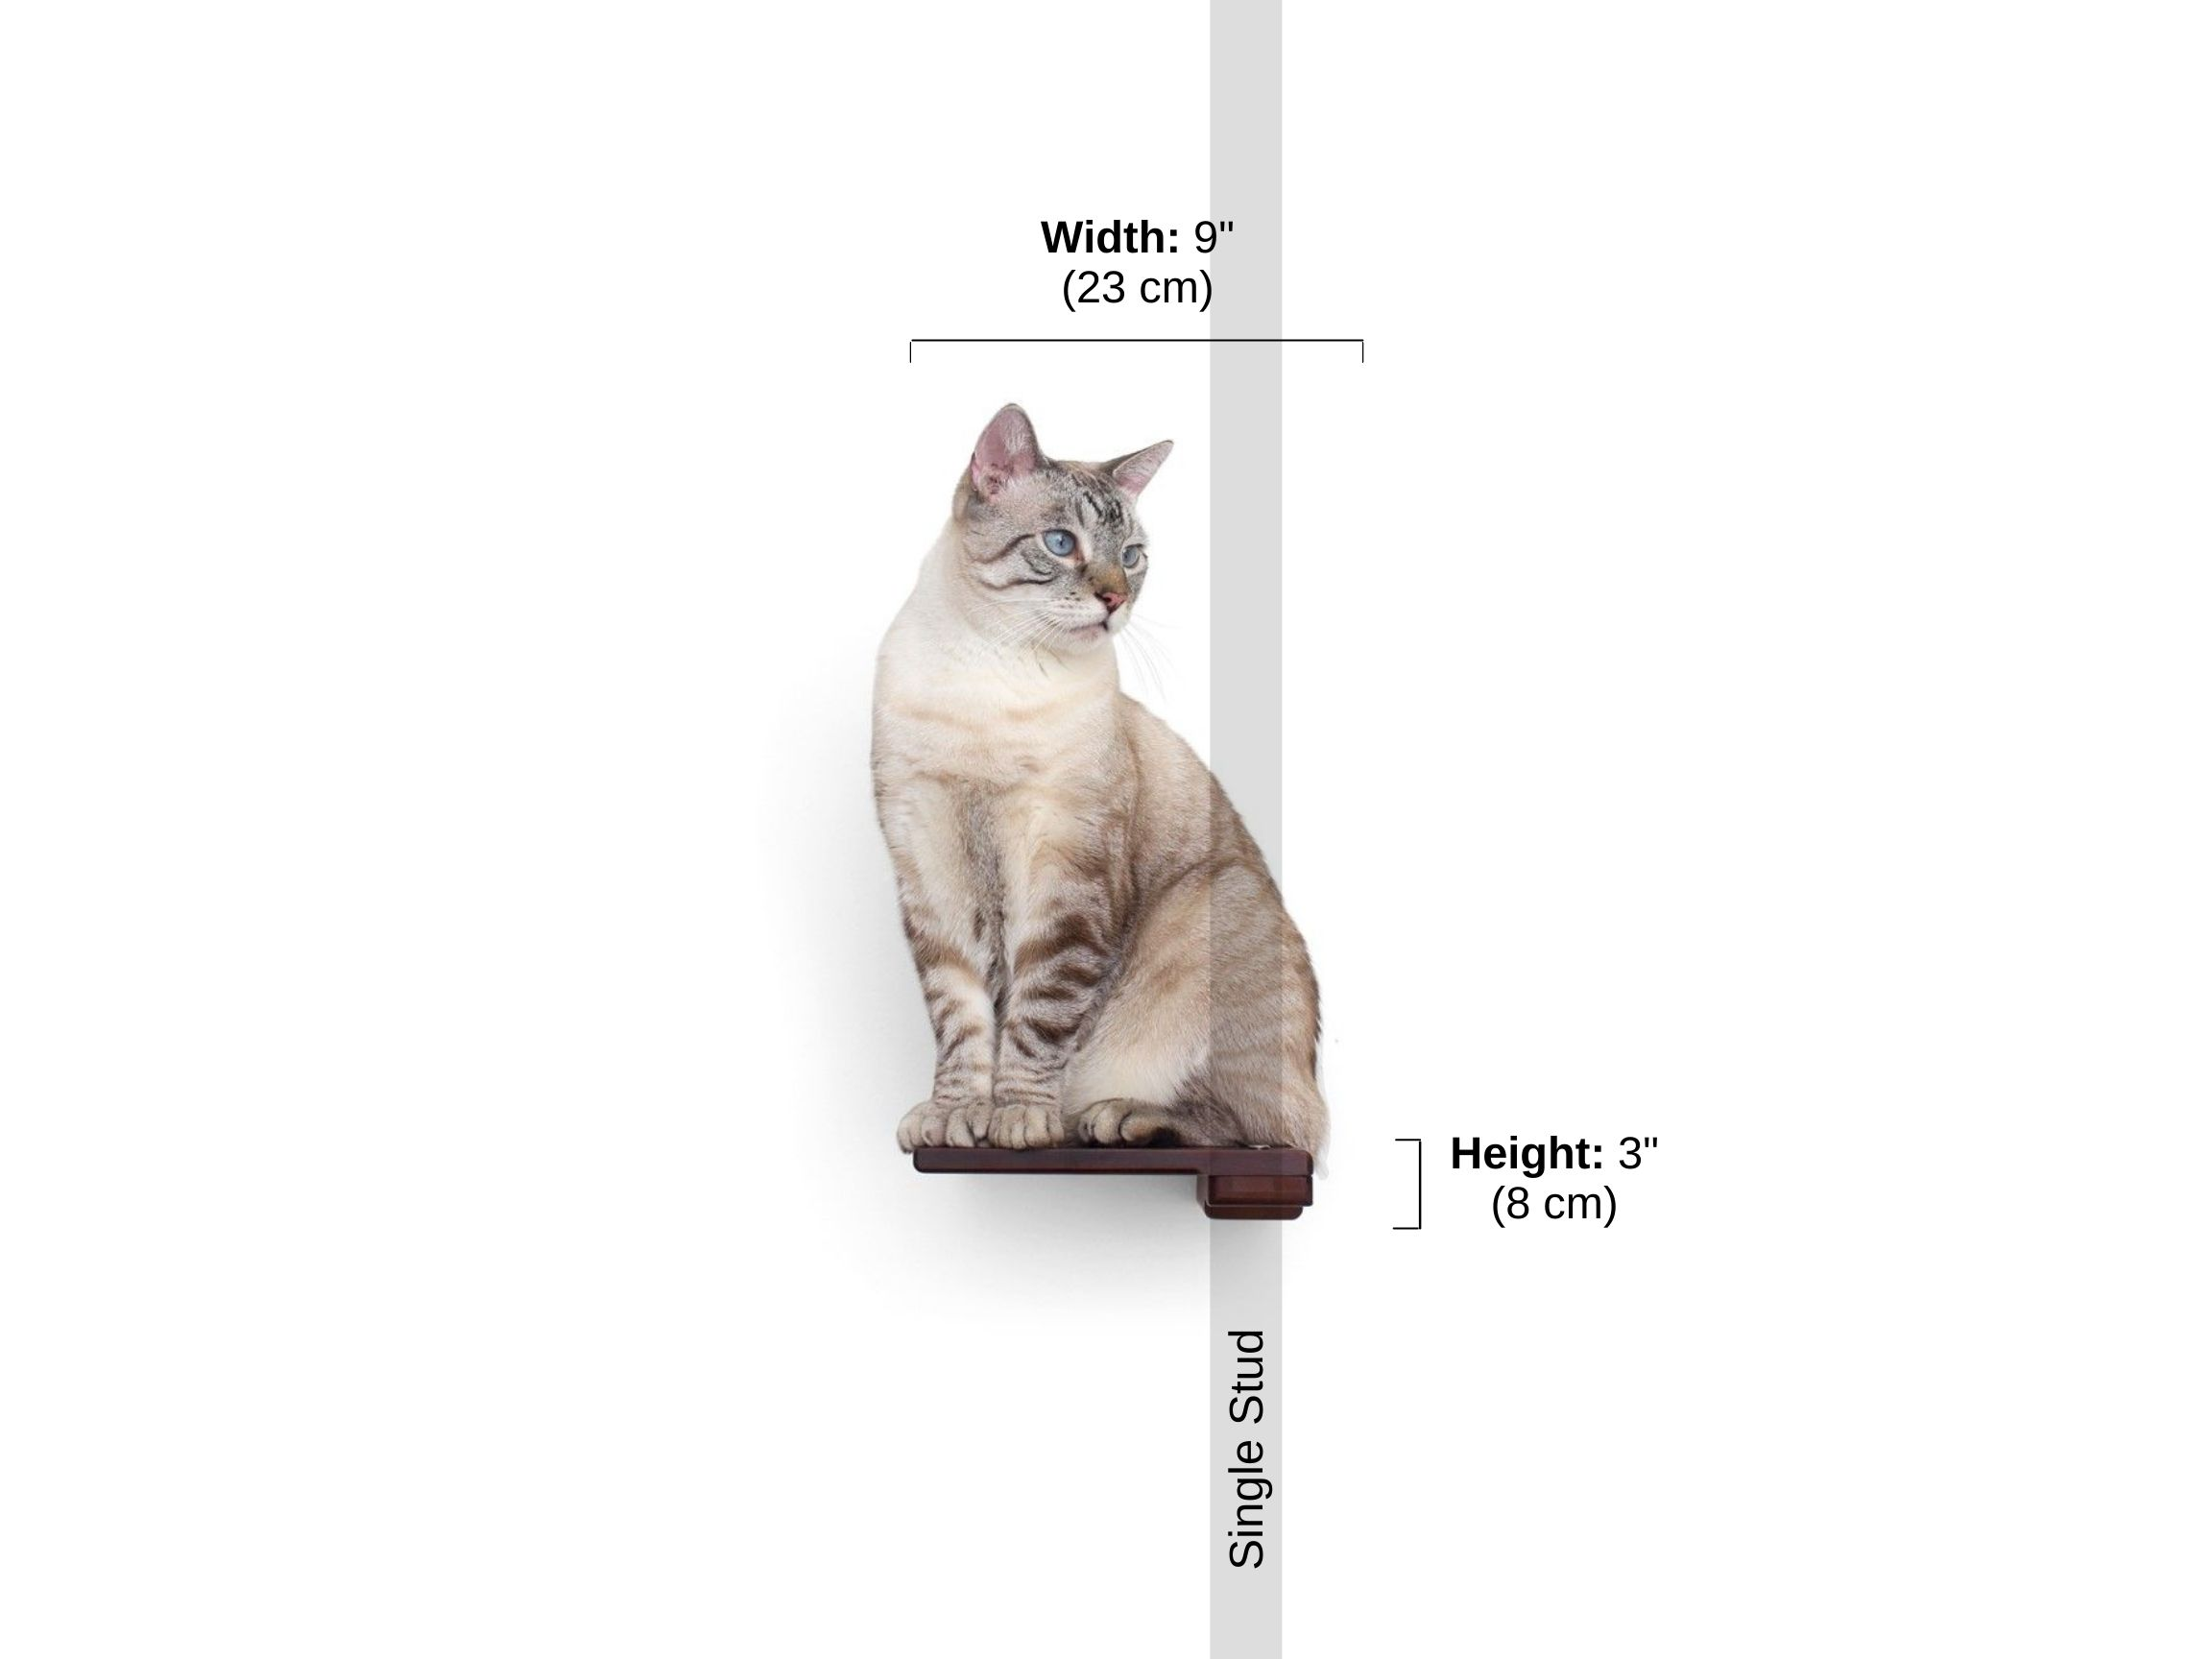 Stud spacing and dimensions of cat step